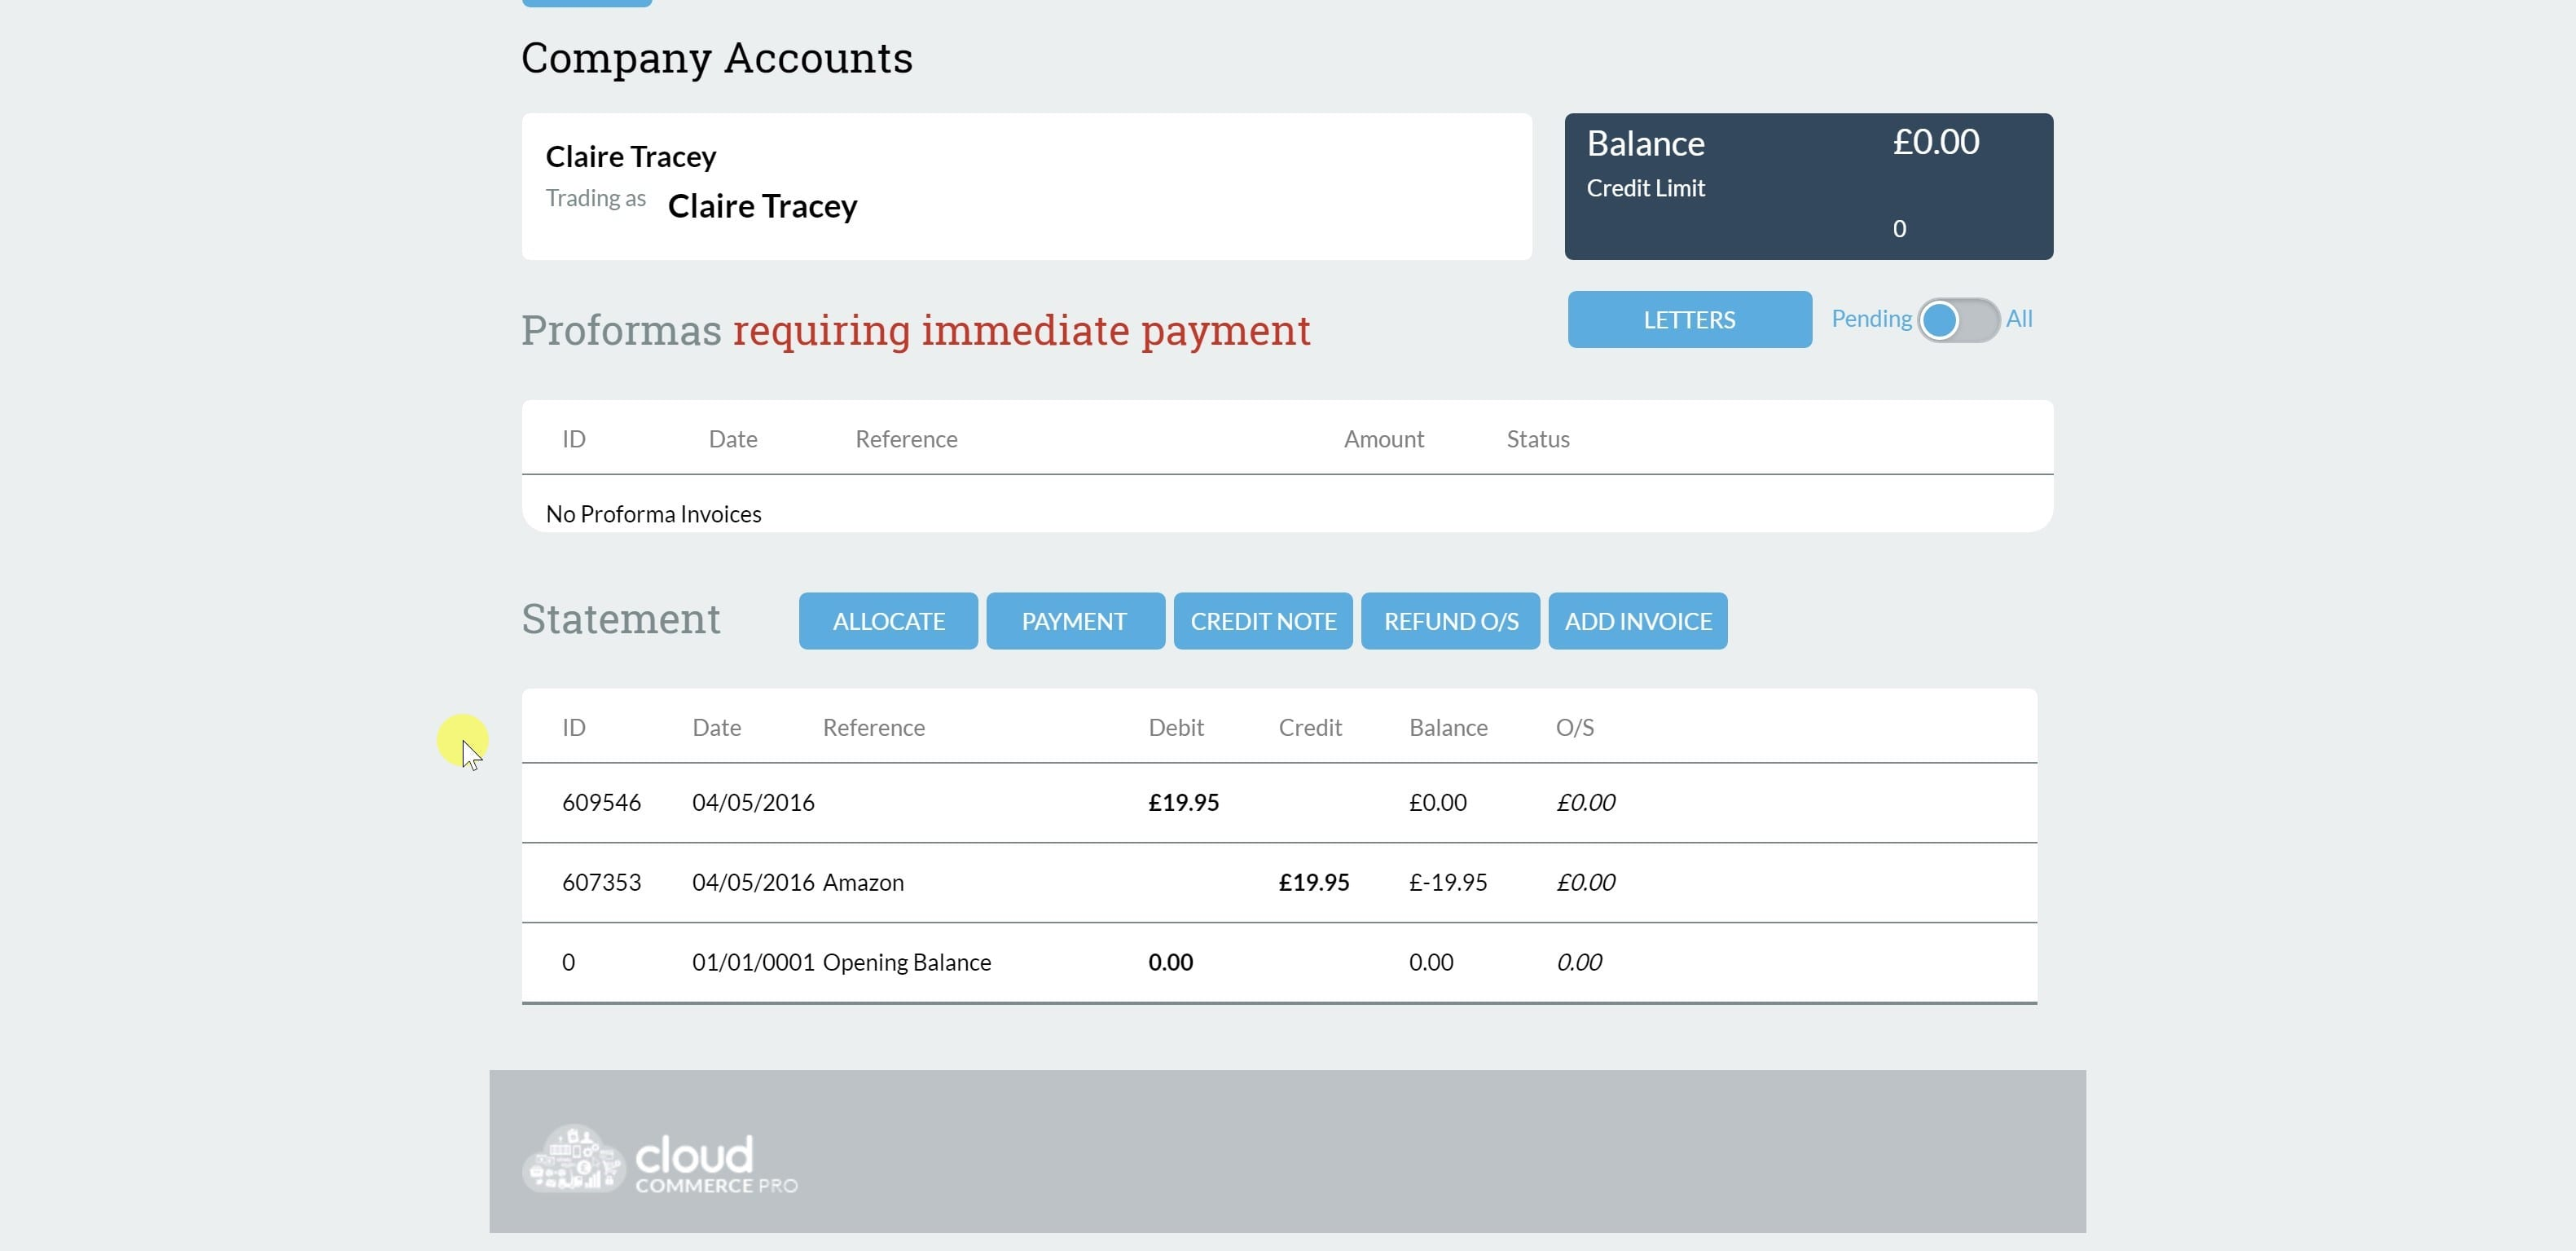 2. List of invoices and credits